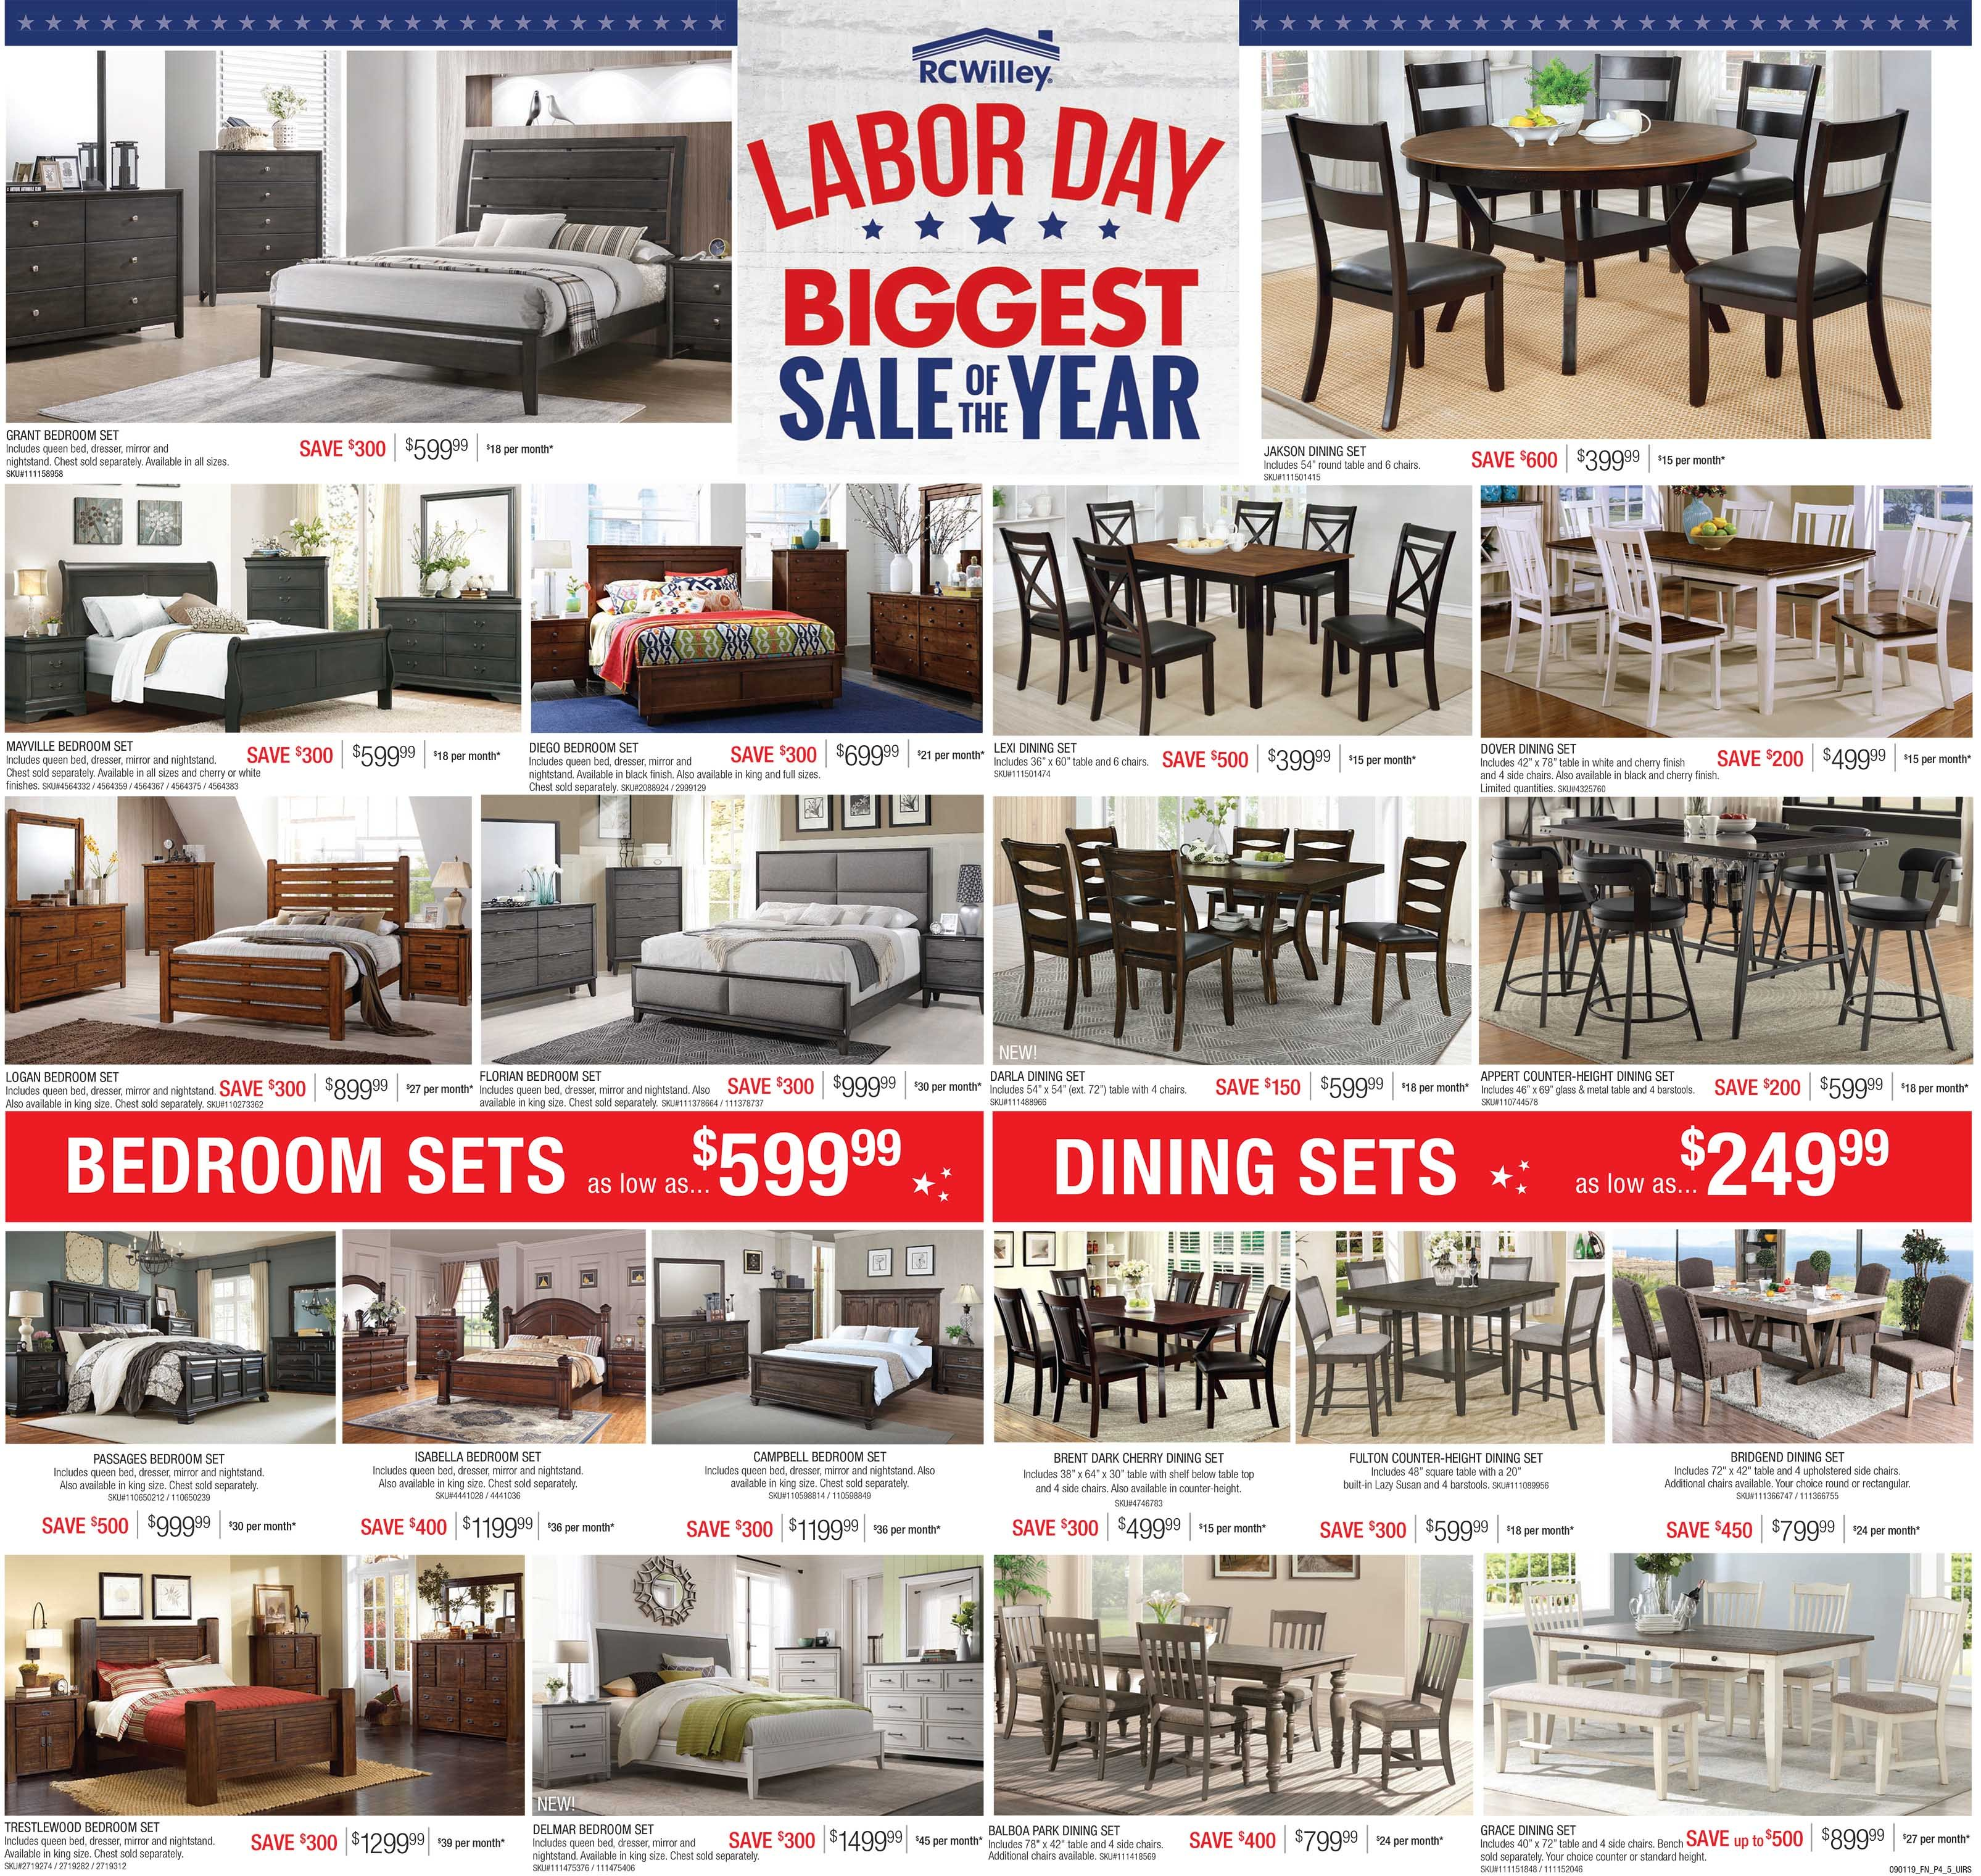 Rc Willey Boise Idaho: Labor Day Home Furnishings Sale At RC Willey! Plus